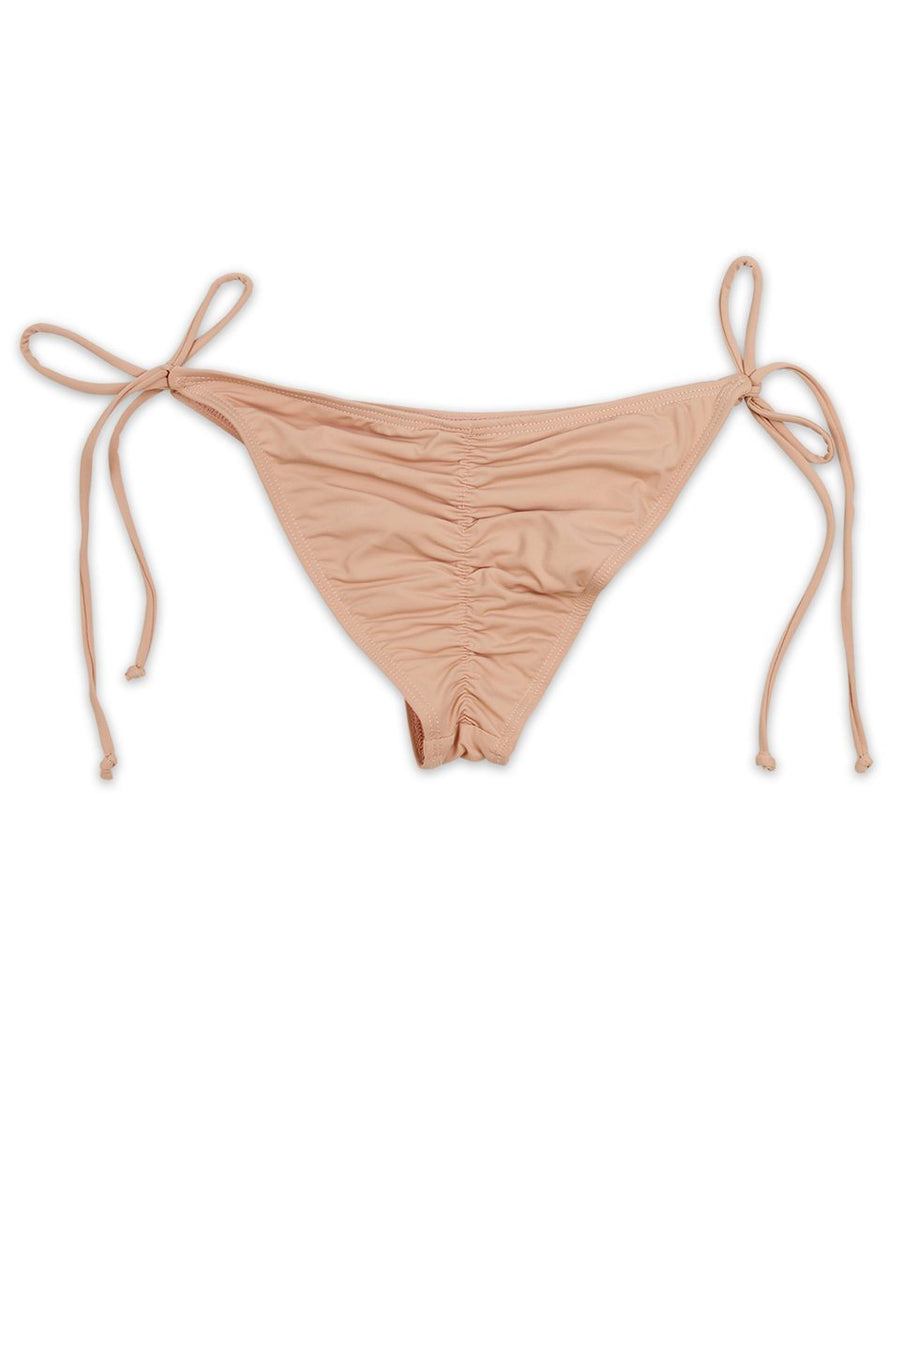 Blush Scrunch Butt Bikini Bottom - Dippin' Daisy's Swimwear